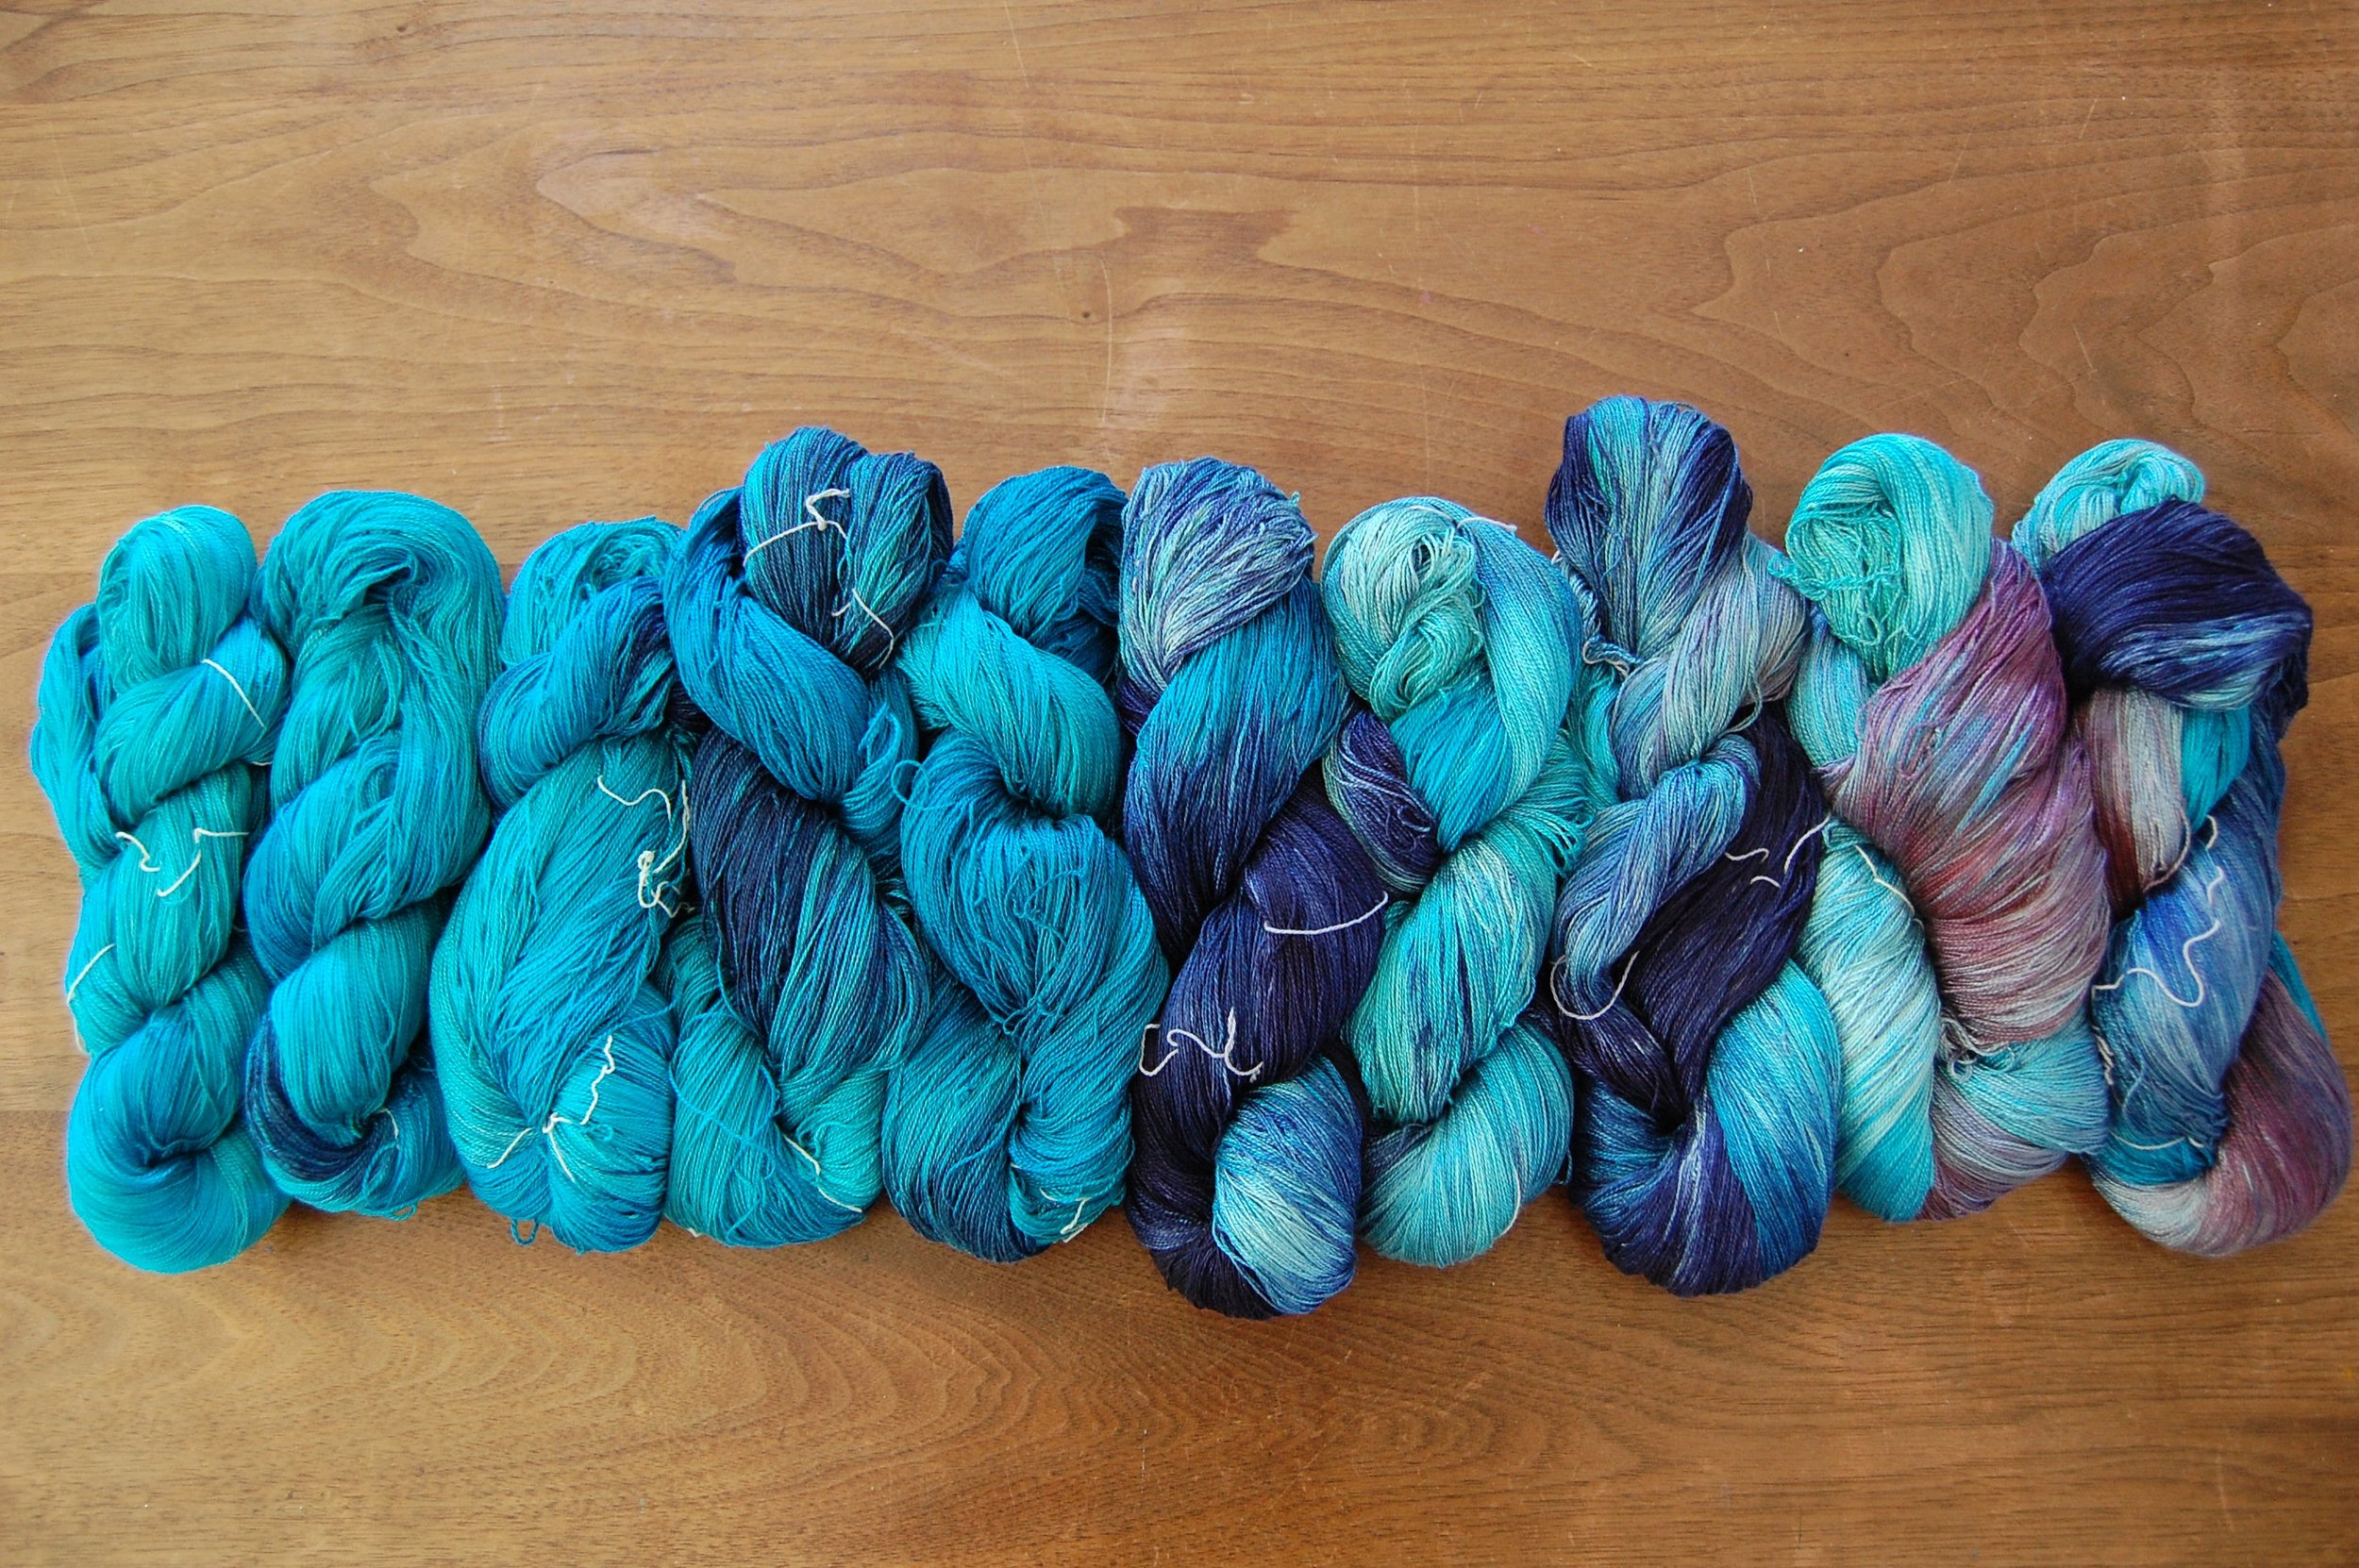 some silk: dyed, washed, rinsed and ready for the loom